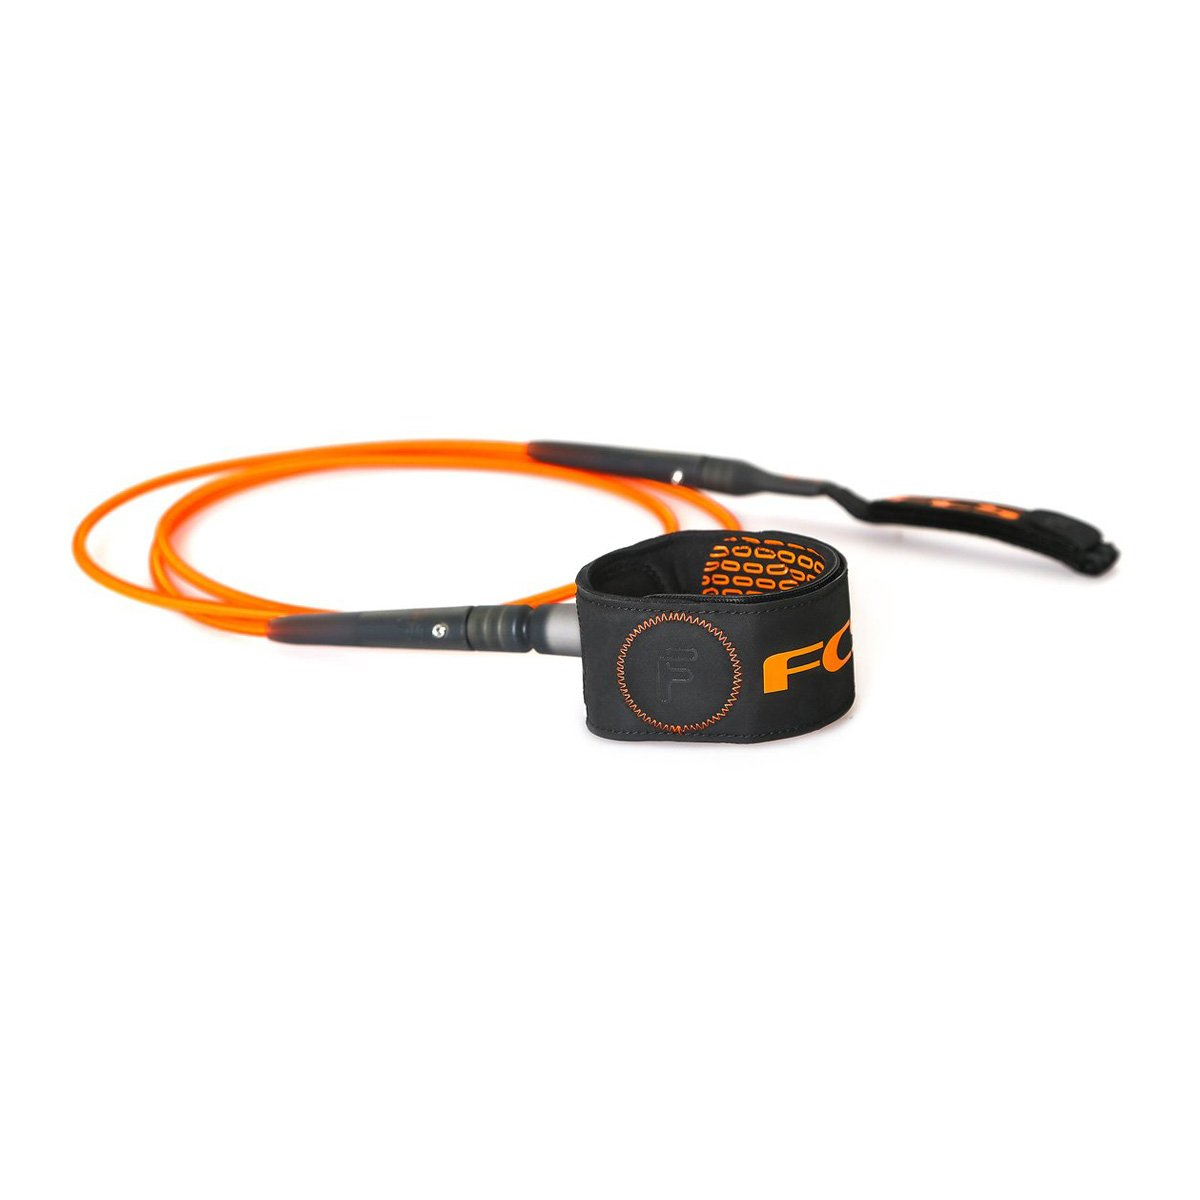 FCS 6 FREEDOM LEASH